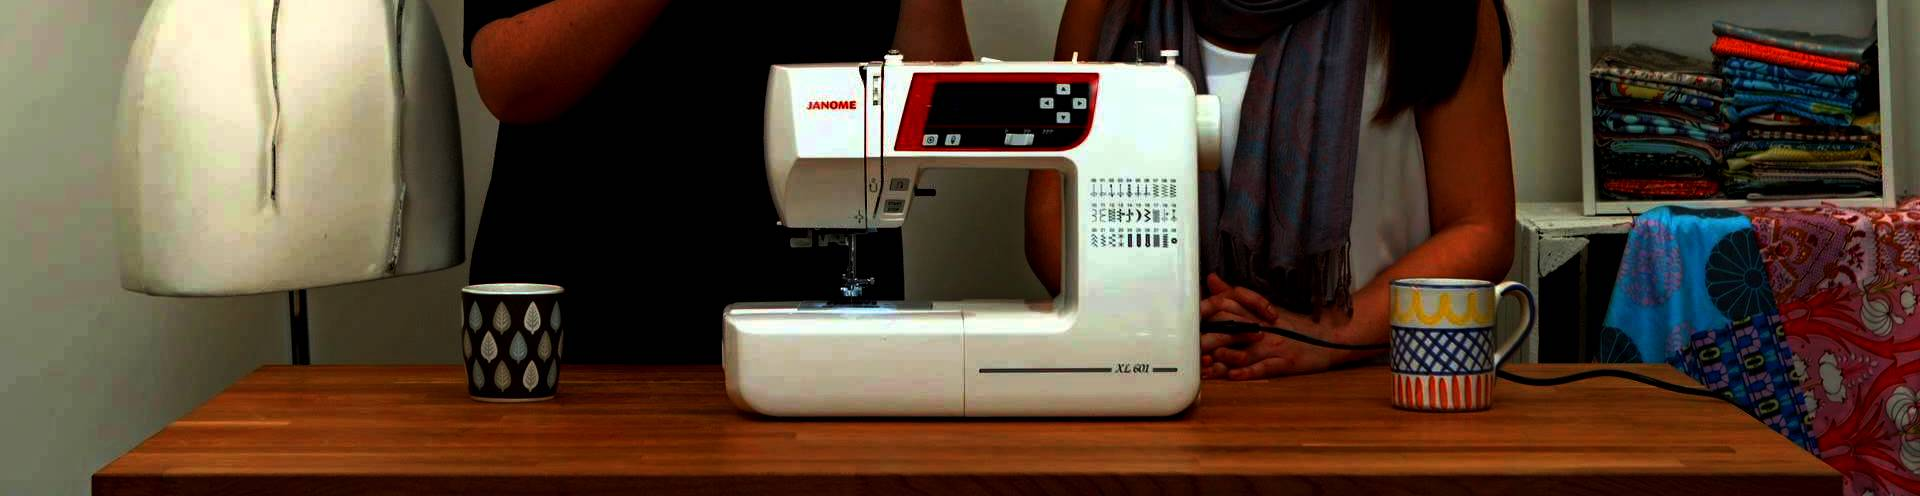 Best Janome Sewing Machines Review